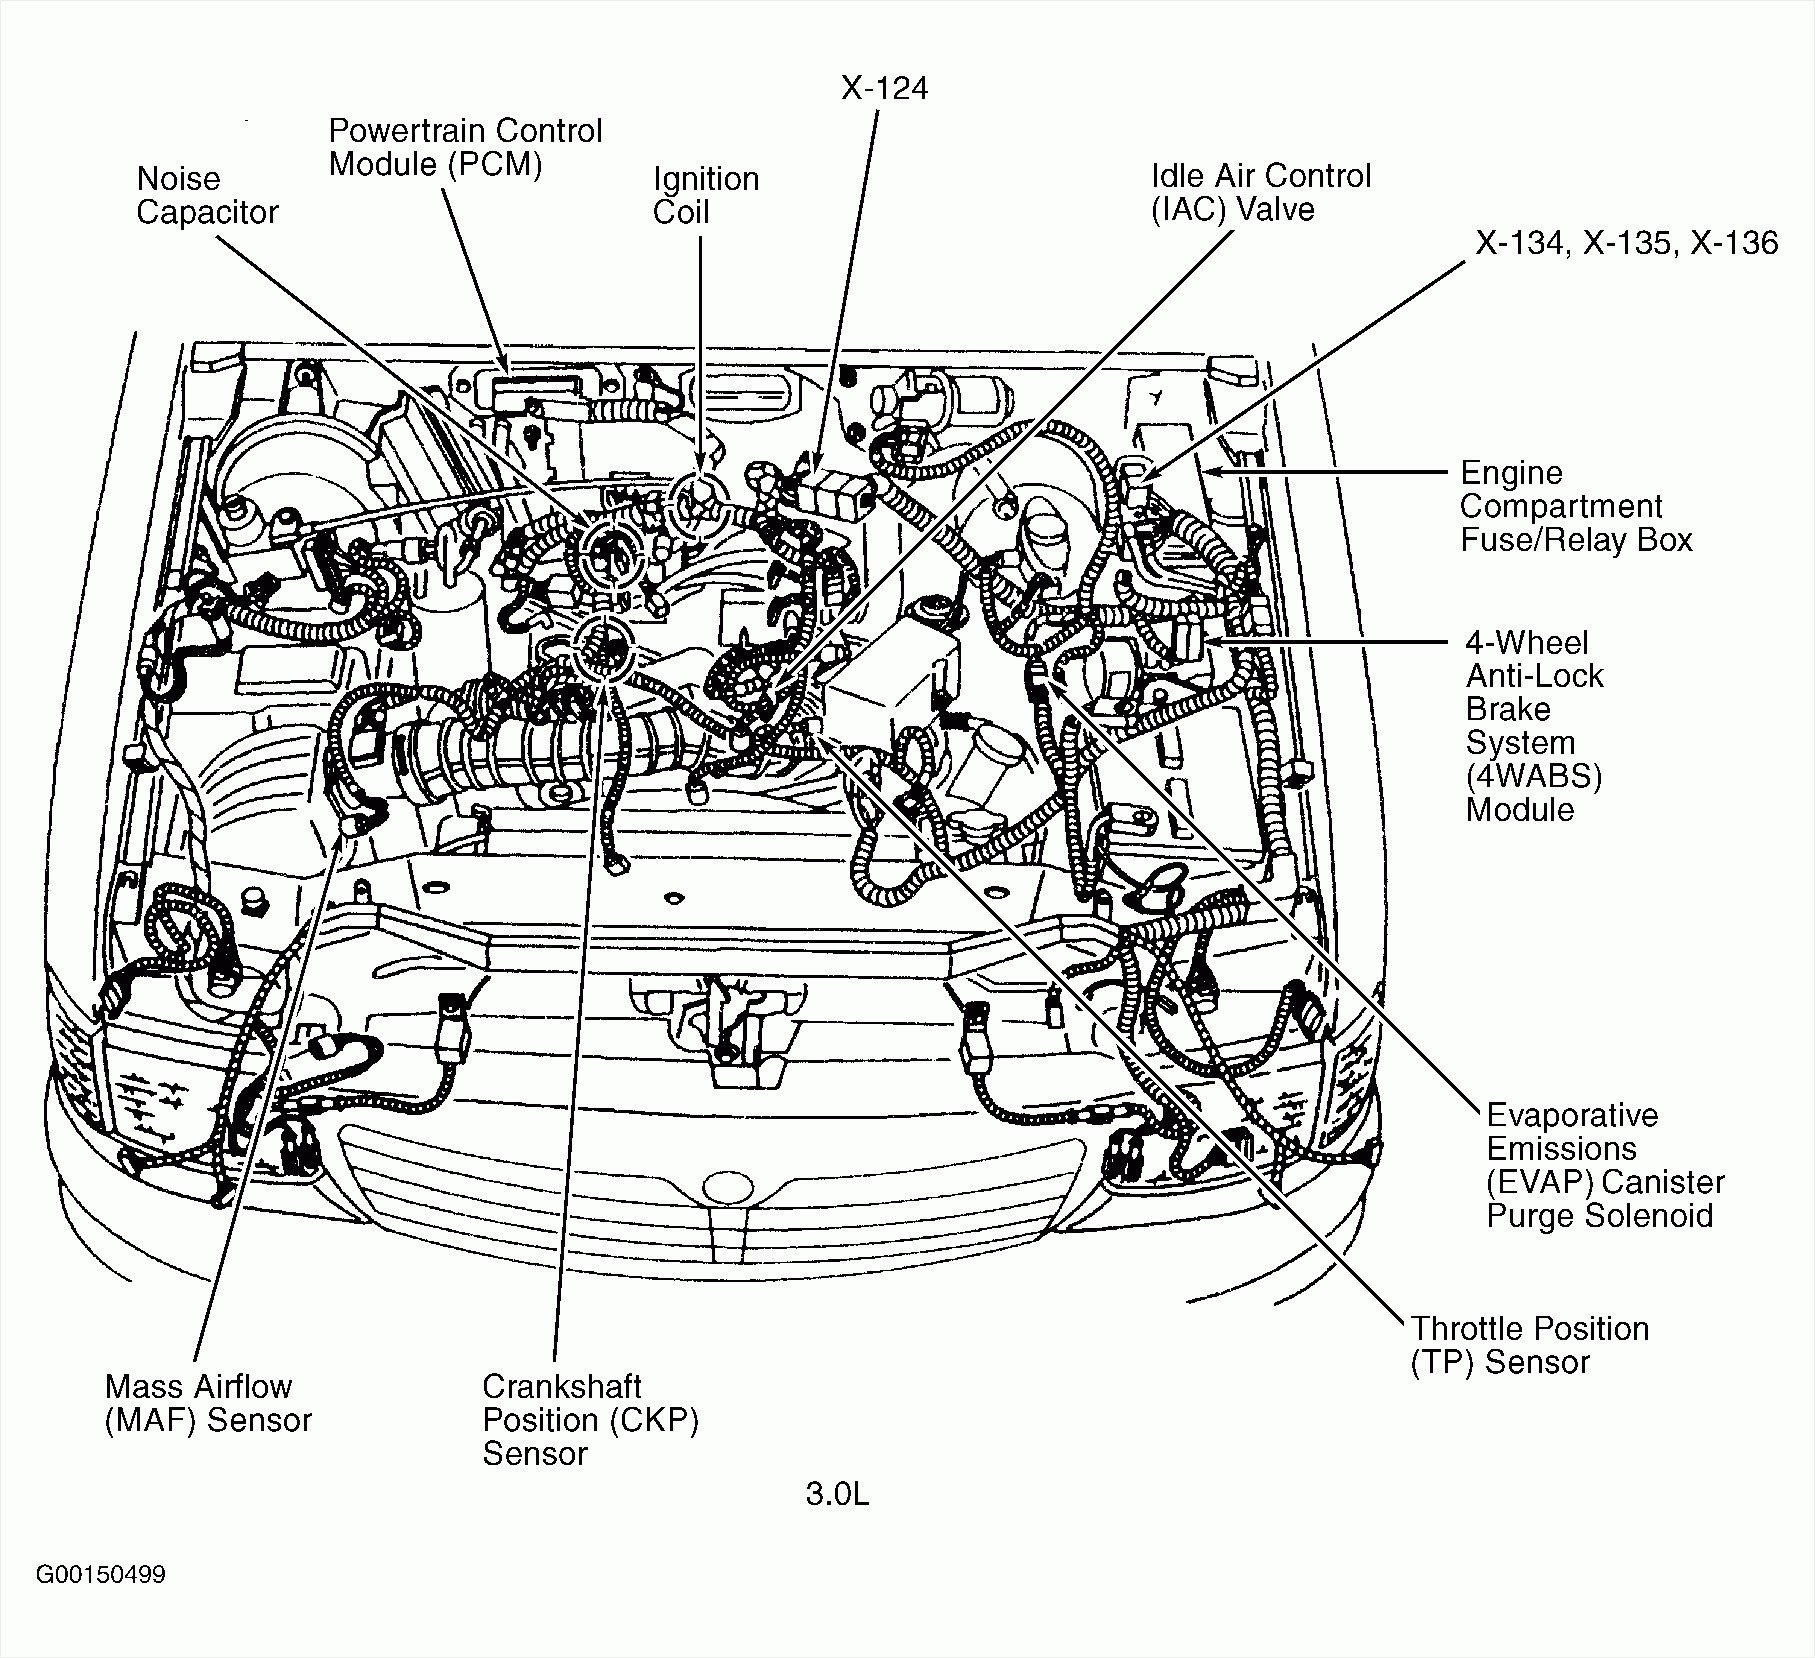 2001 Mazda 626 Fuse Diagram Wiring Library 1999 Box Layout 99 Engine Schematics Diagrams U2022 Rh Parntesis Co